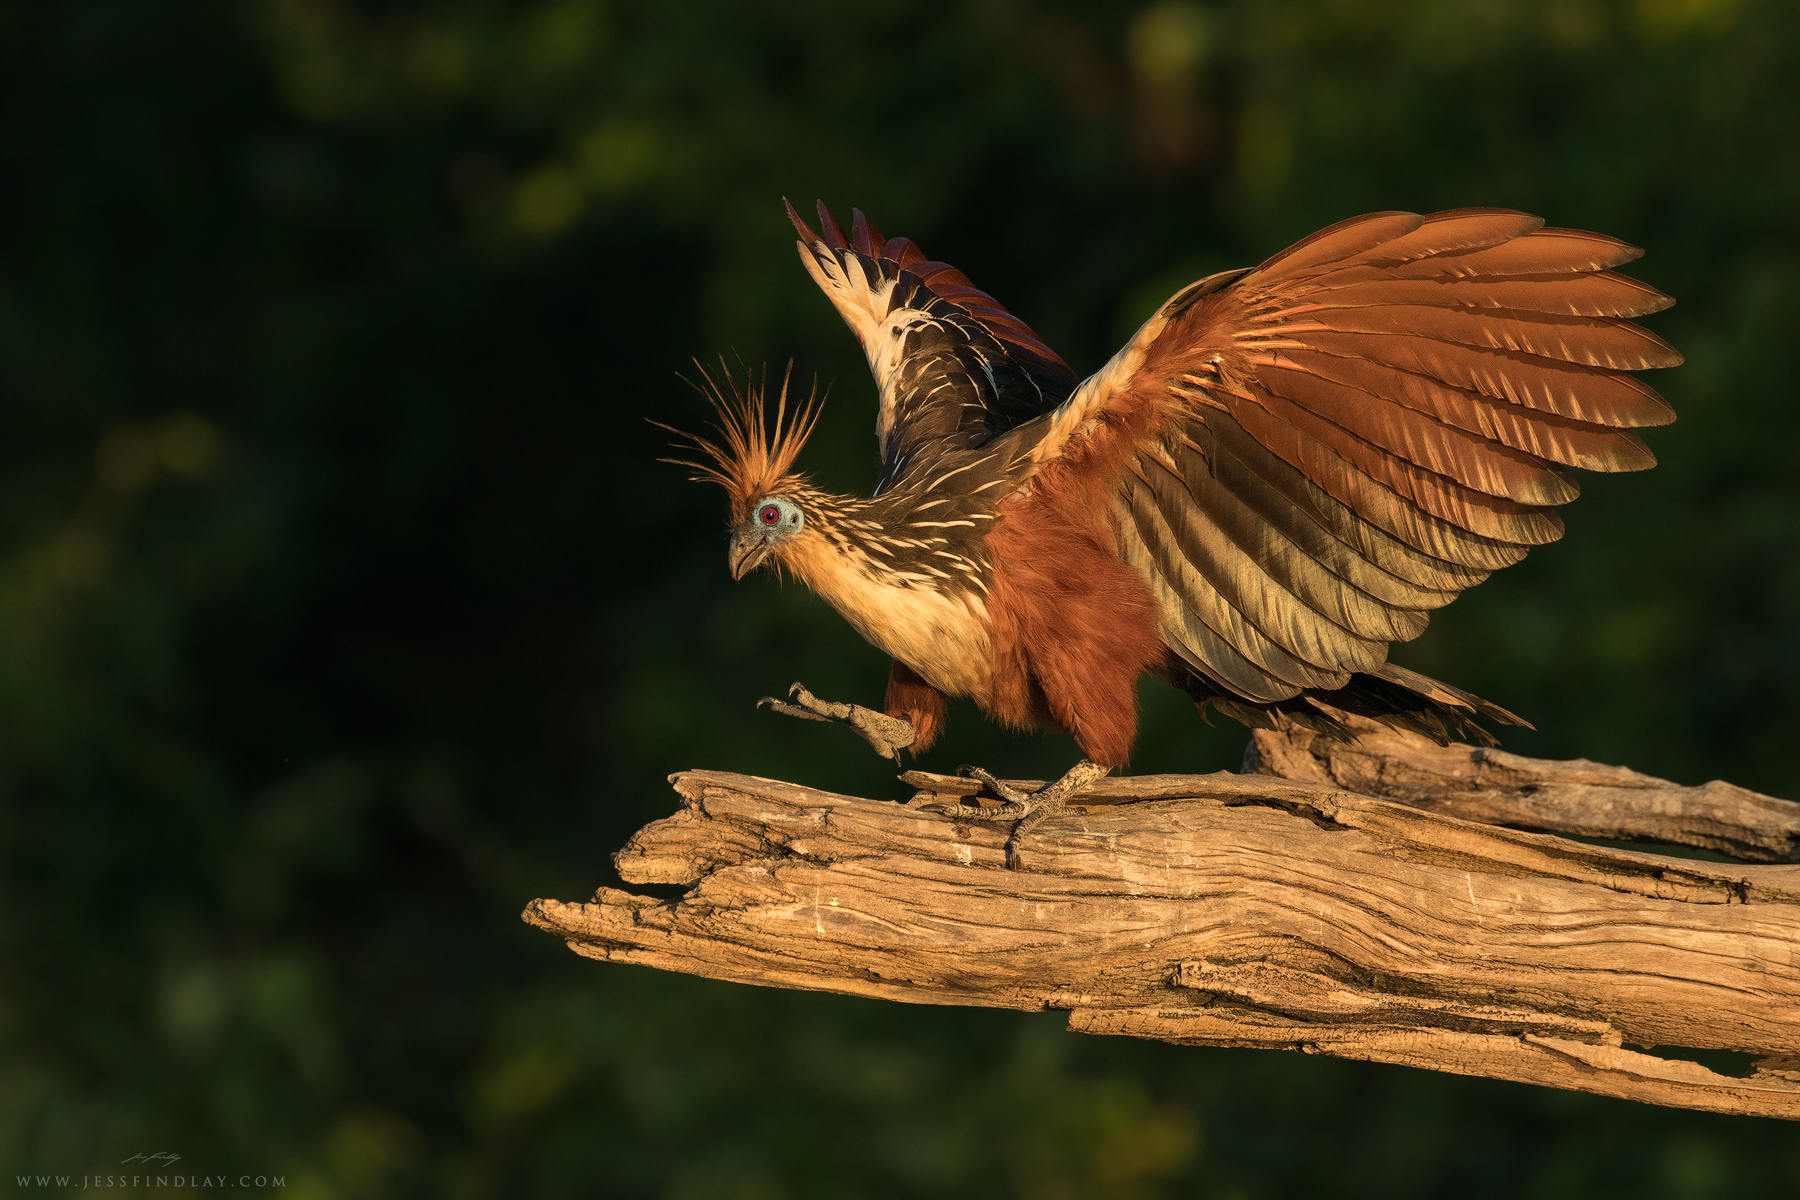 A Hoatzin struts along a fallen tree in evening light.